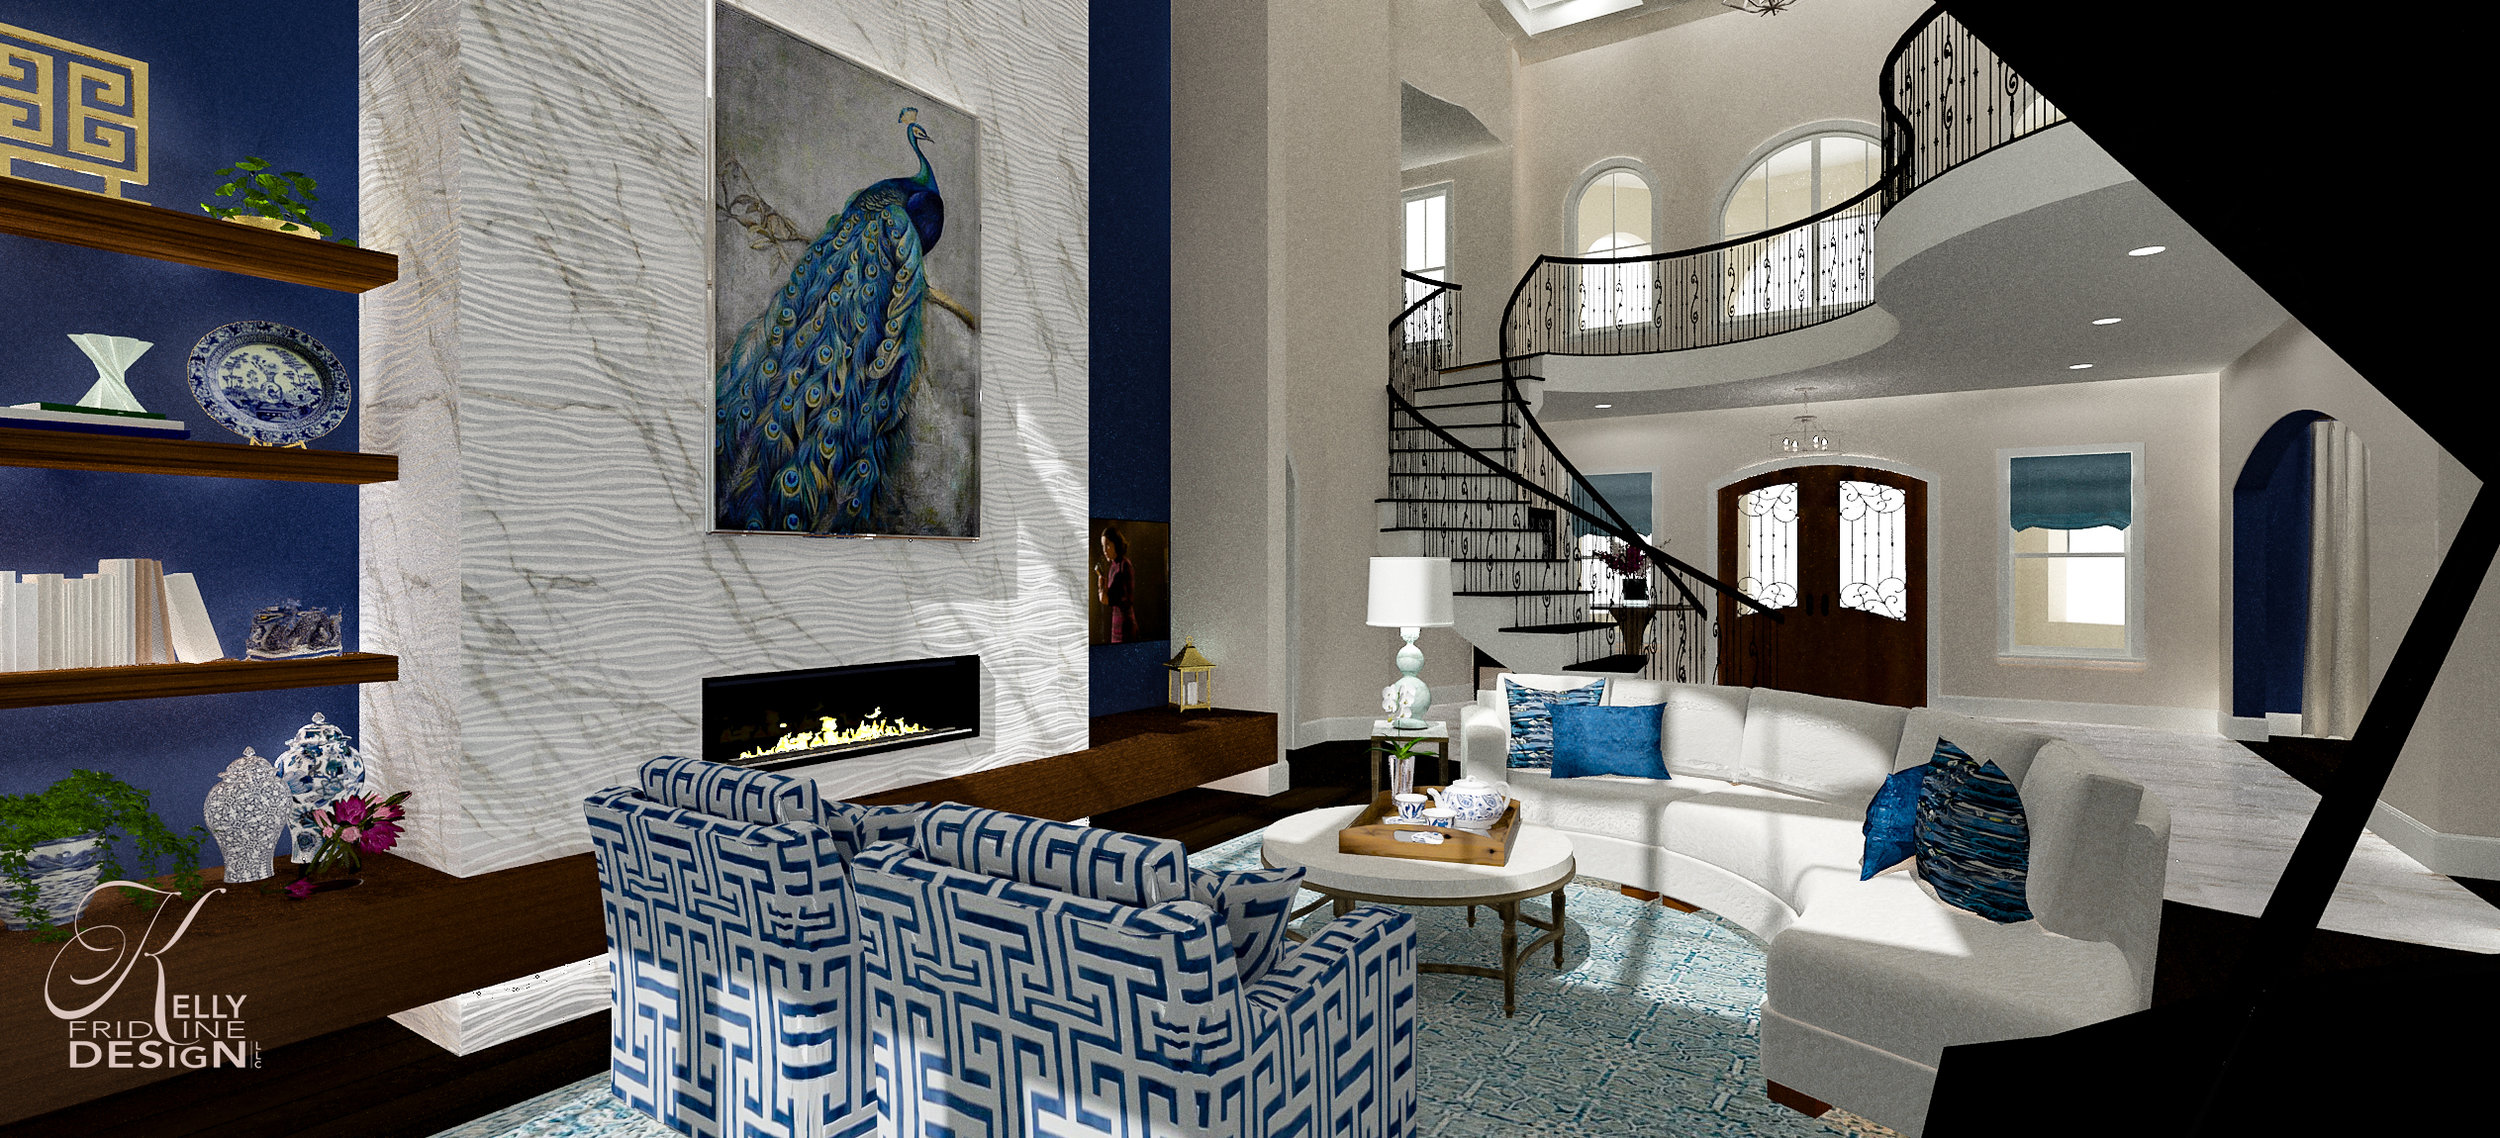 Recently completed rendering using Ray Trace in Chief Architect X11. Designed by:  Jane Ann Design s.